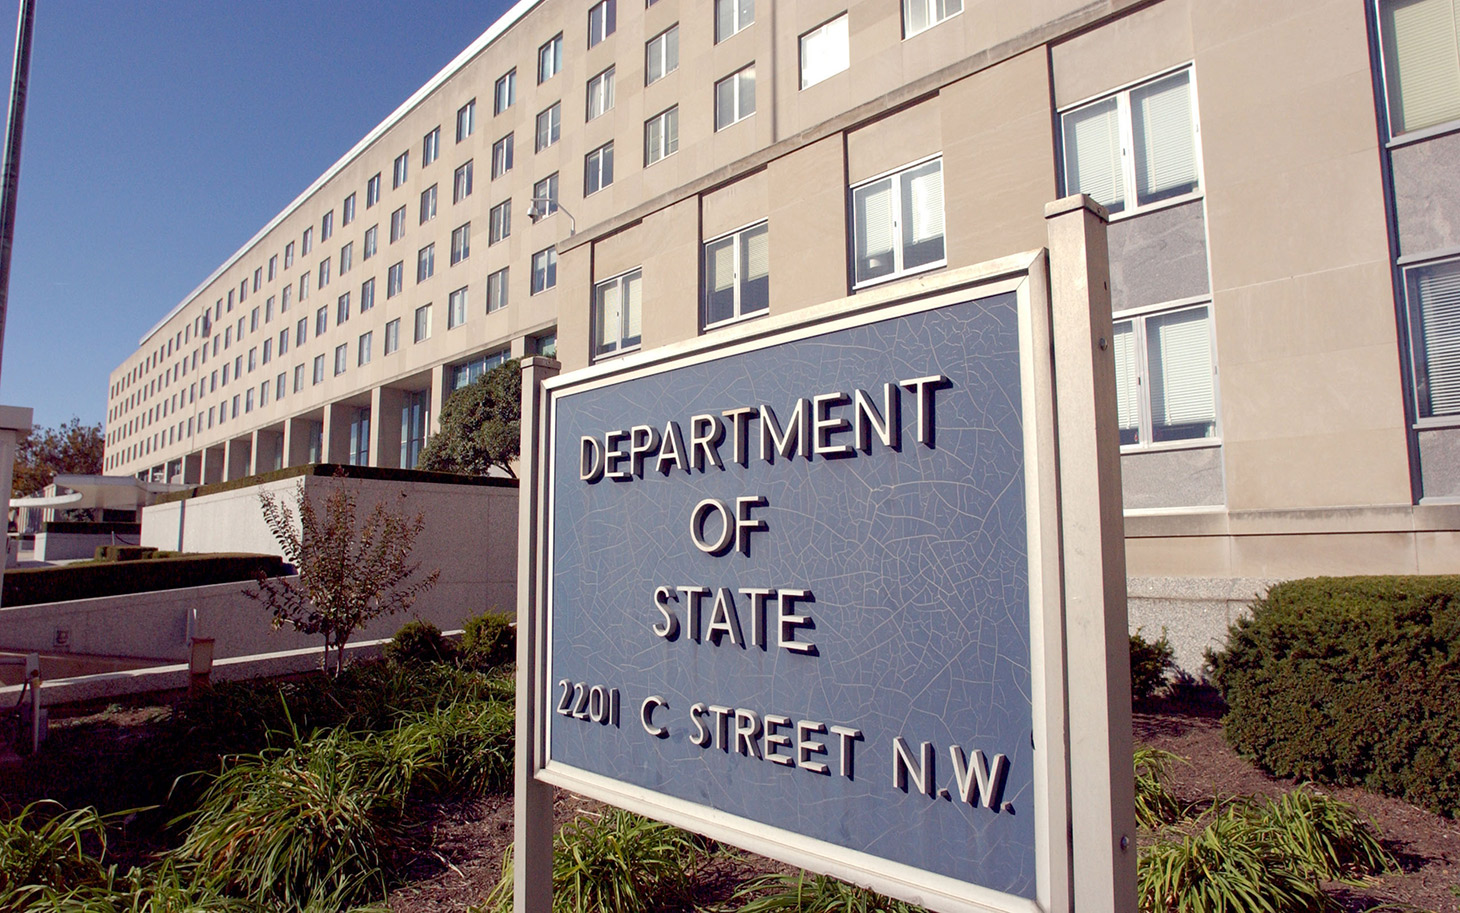 US State Department: We do not recognize the occupation of Cyprus